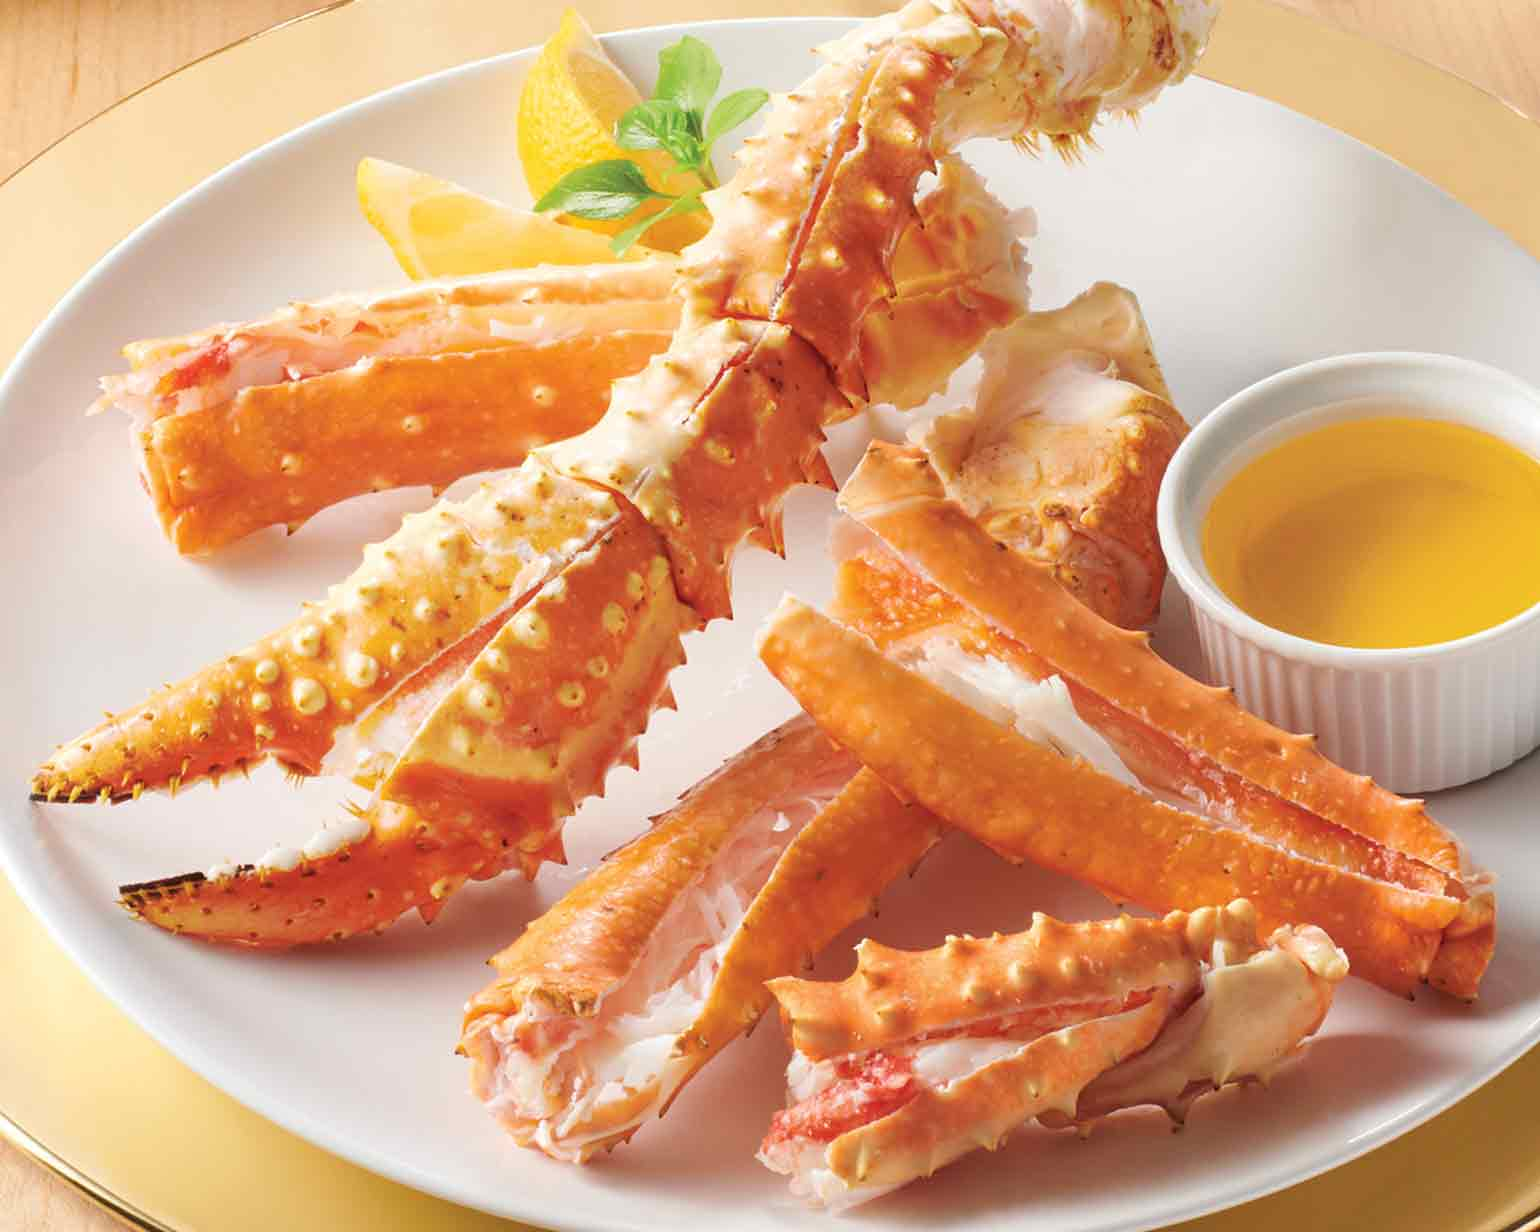 signature king crab legs and claws